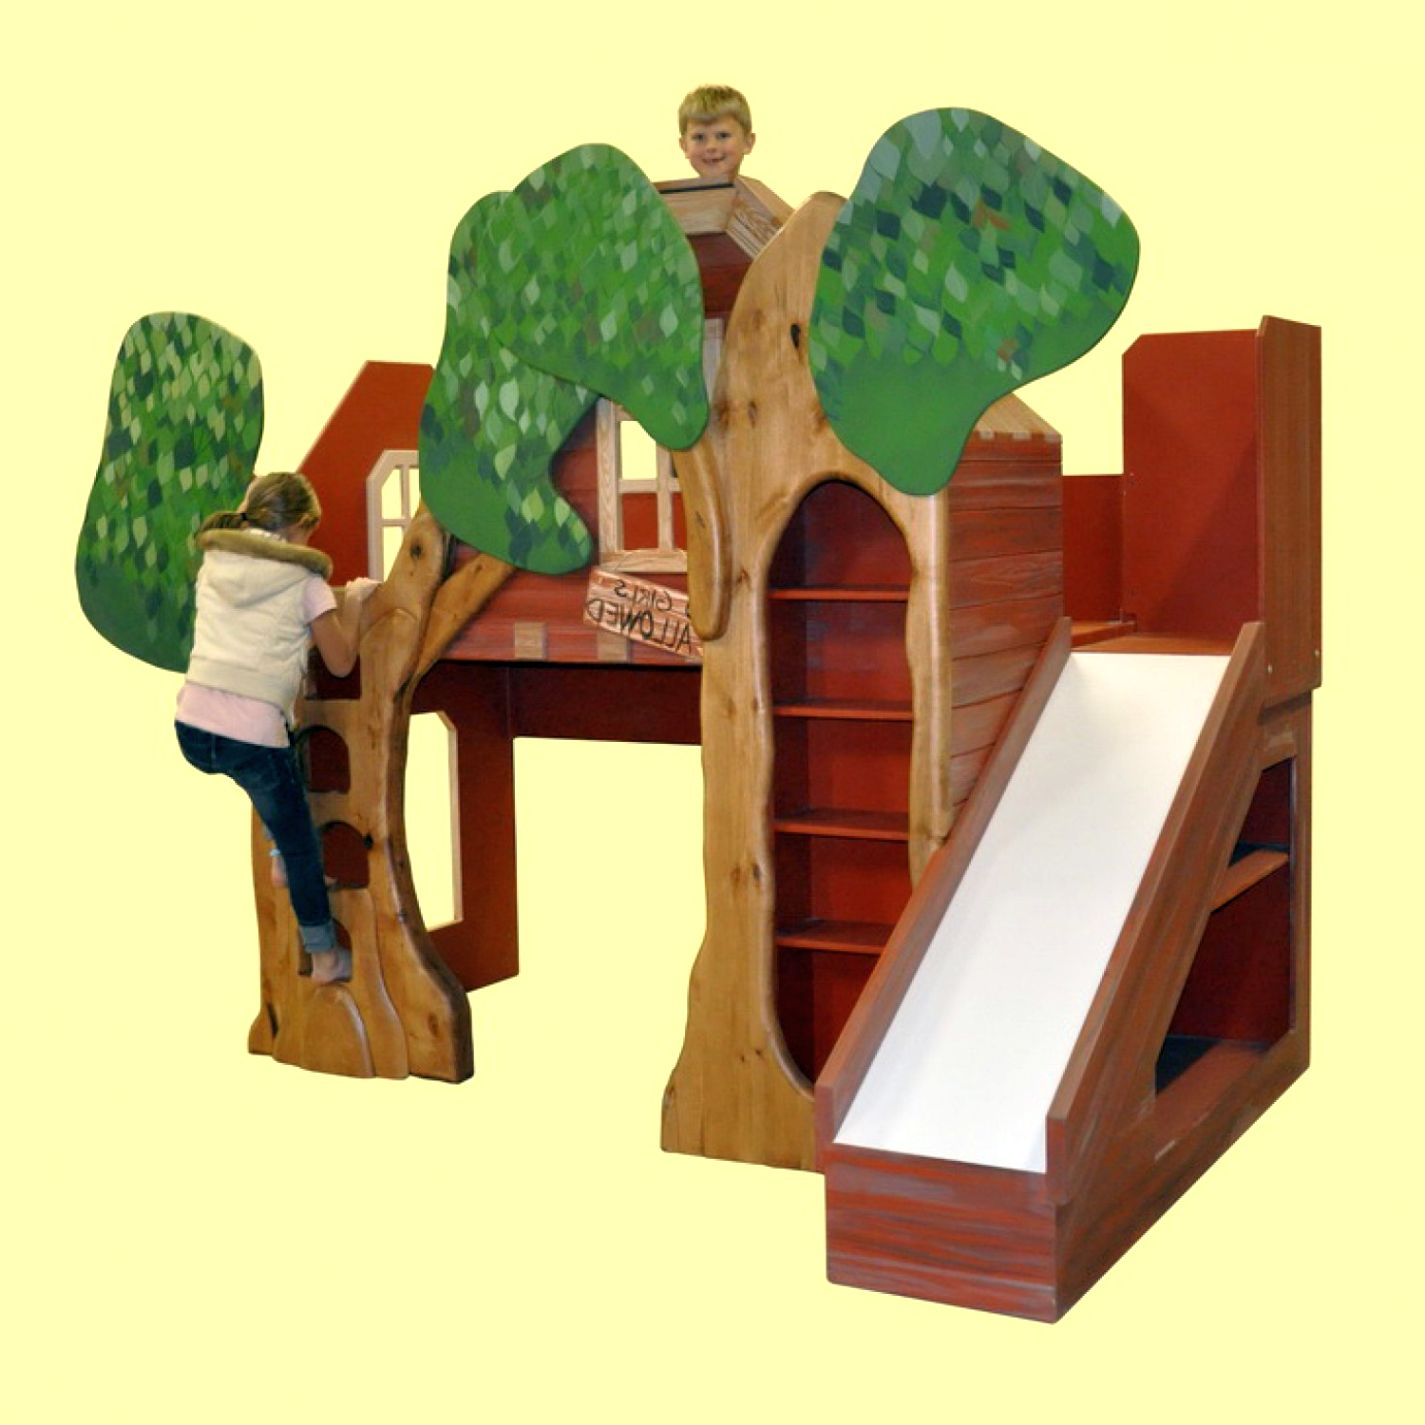 Joyful Treehouse Themed Modern Bunk Bed For Kids By Trevor